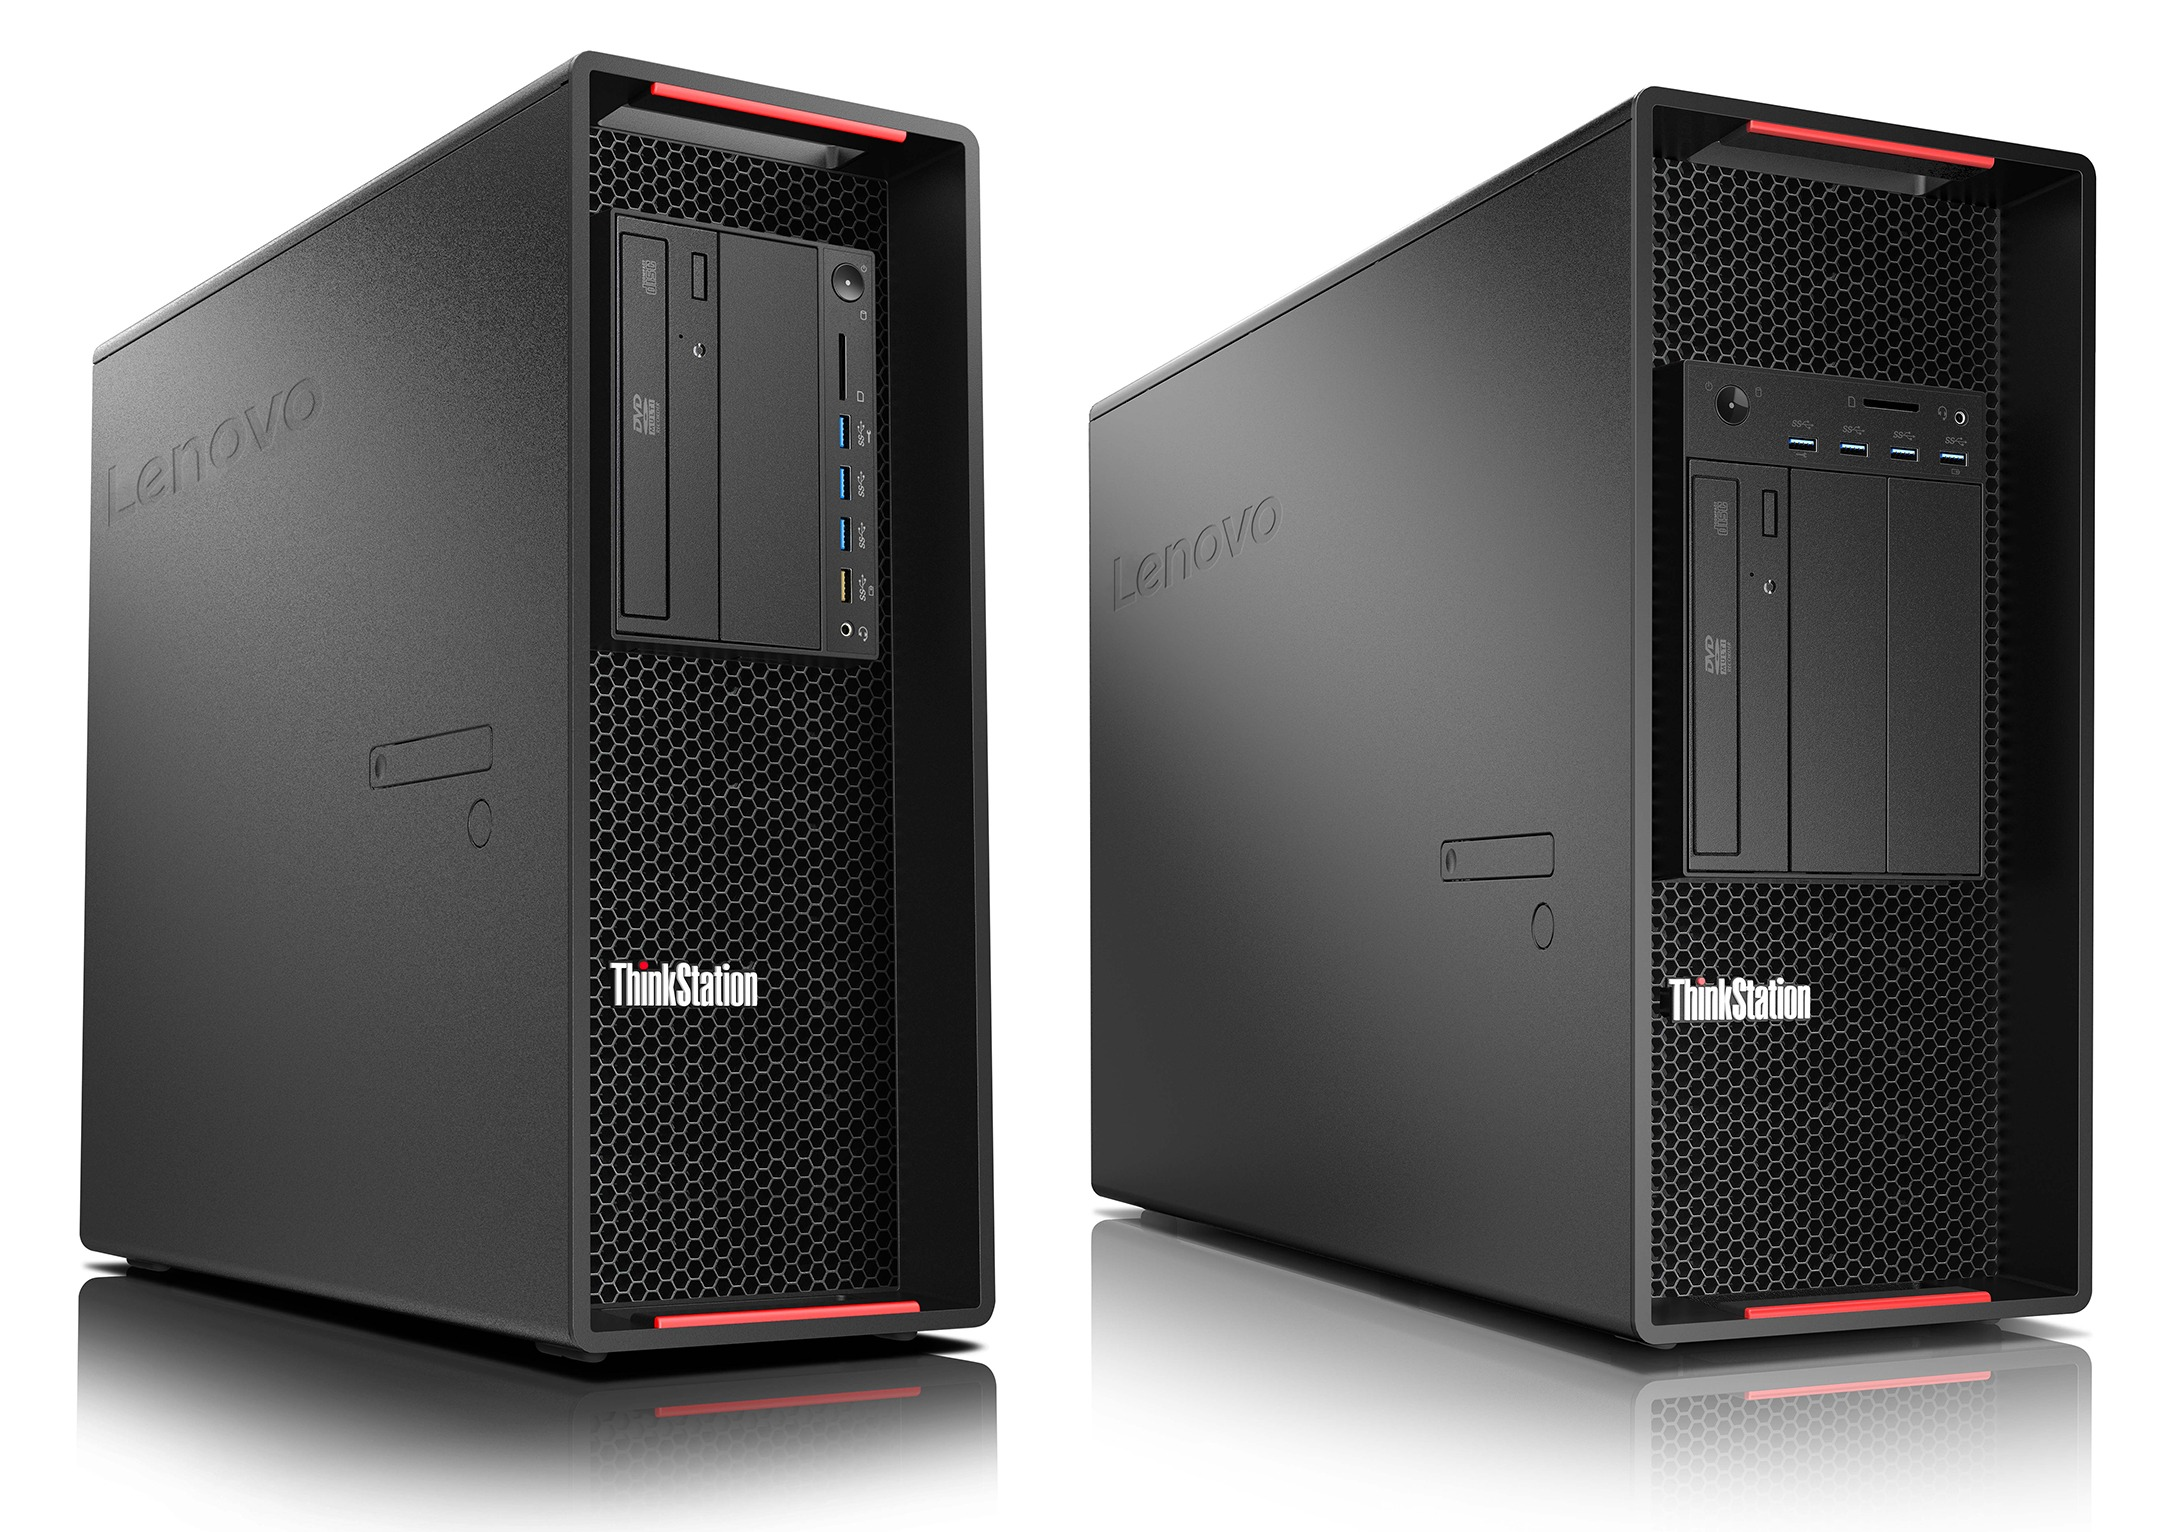 lenovo-thinkstation-p710-p910-comparison